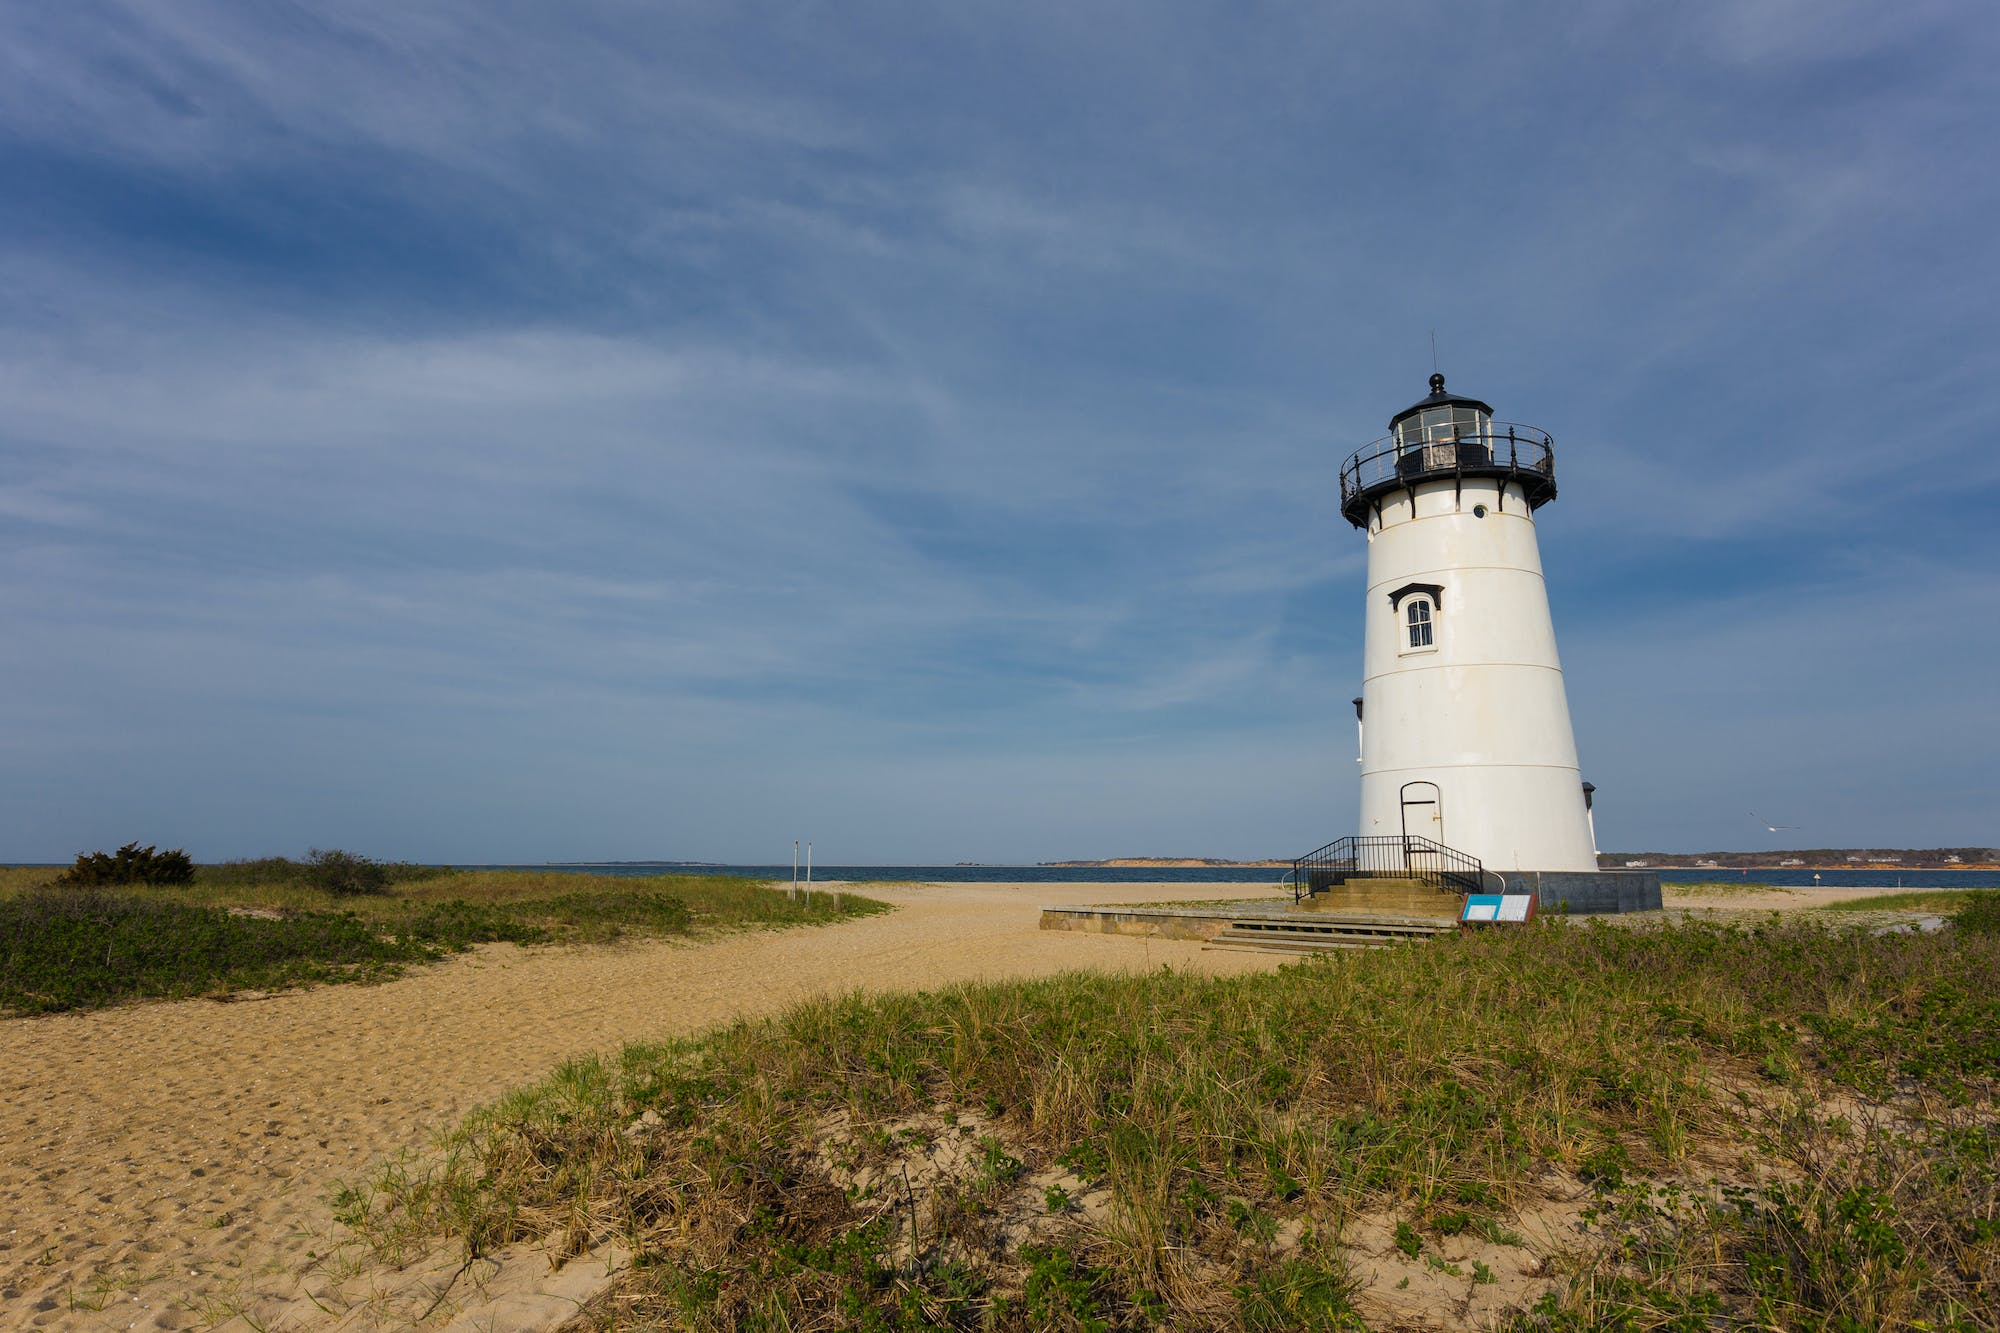 Lighthouse at Oak Bluffs in Martha's Vineyard, Massachusetts